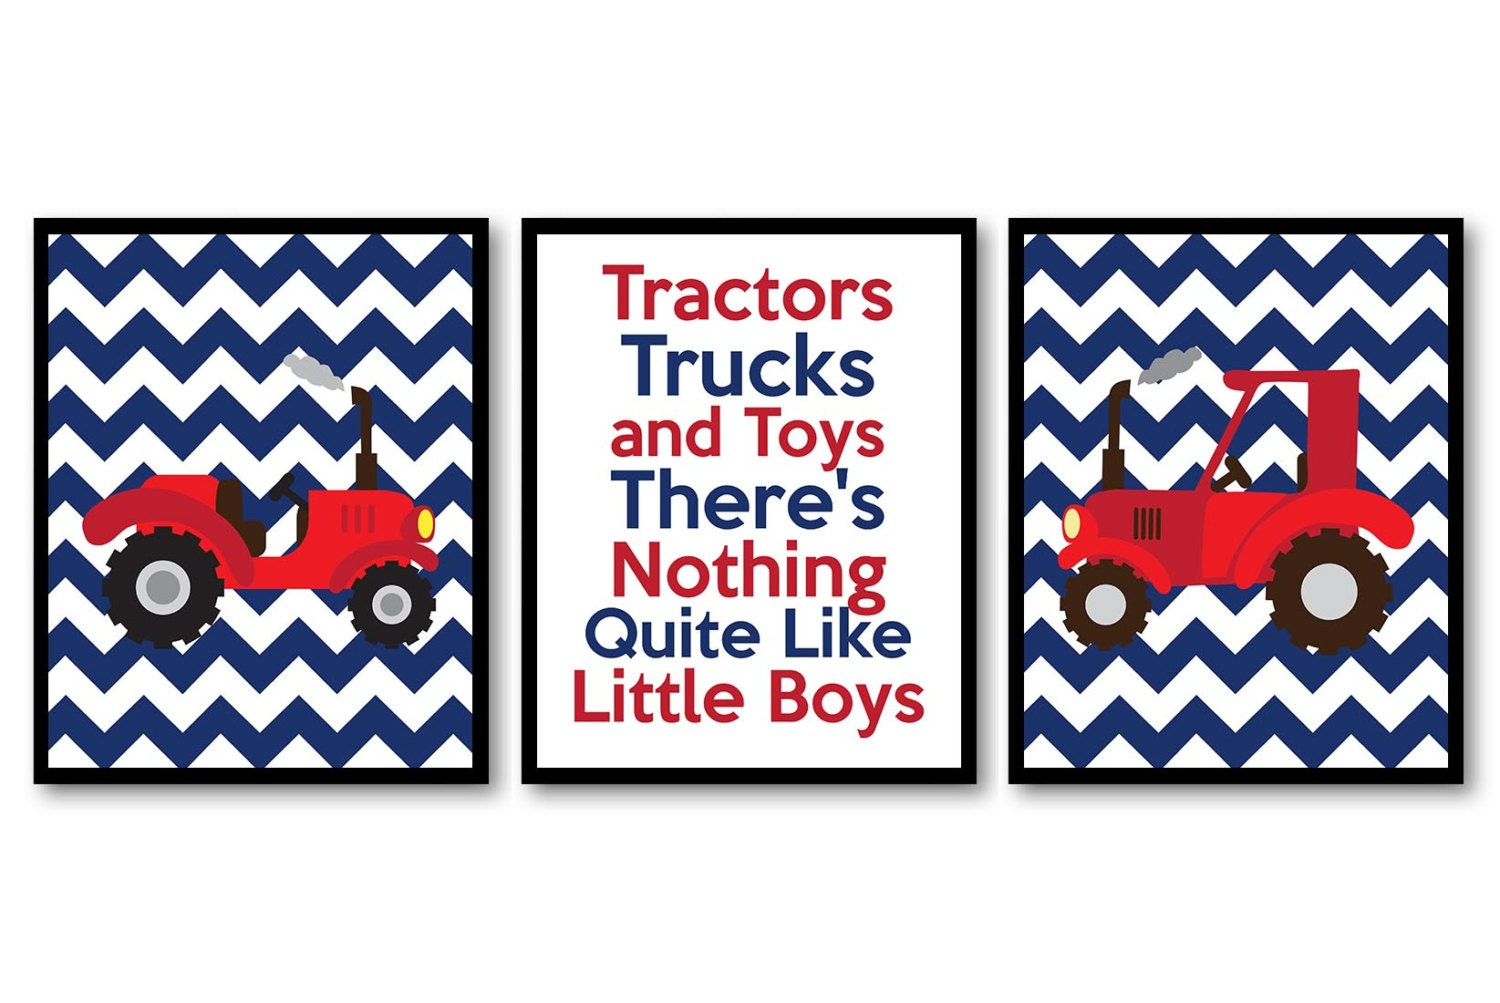 Nursery Art Tractors Trucks and Toys Theres Nothing Quite Like Little Boys Prints Set of 3 Navy Blue